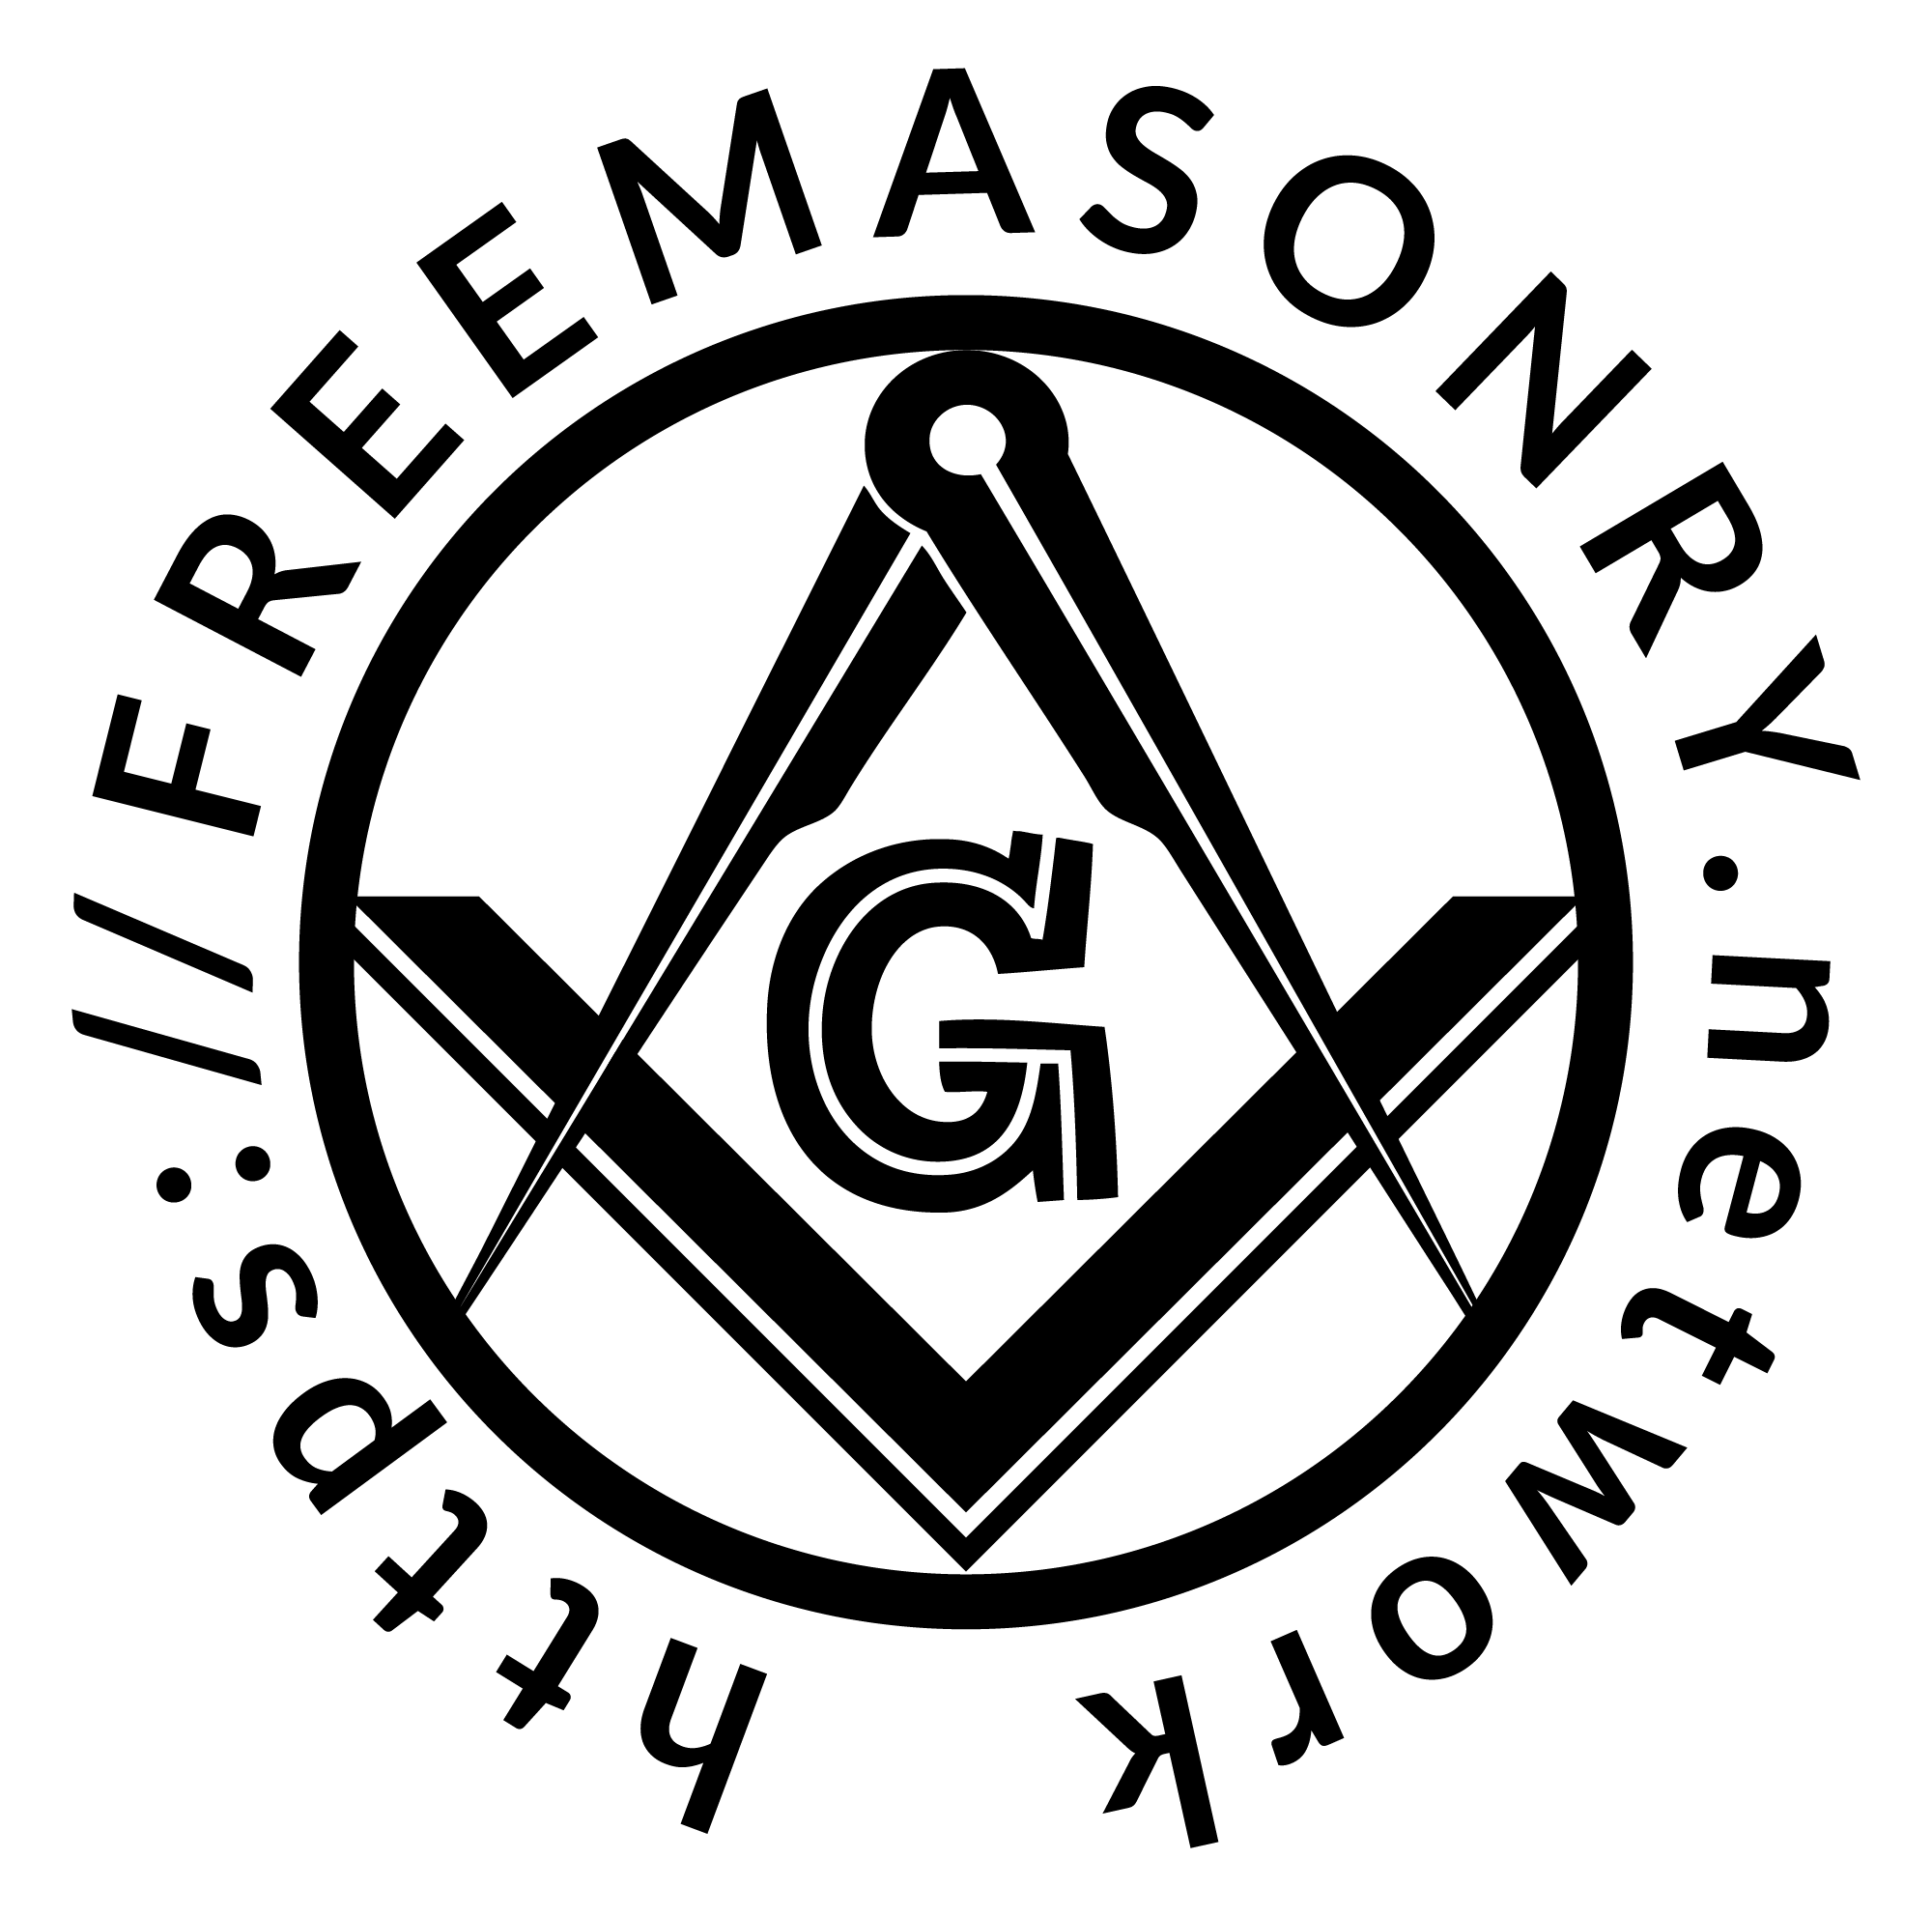 HARMONY IN FREEMASONRY